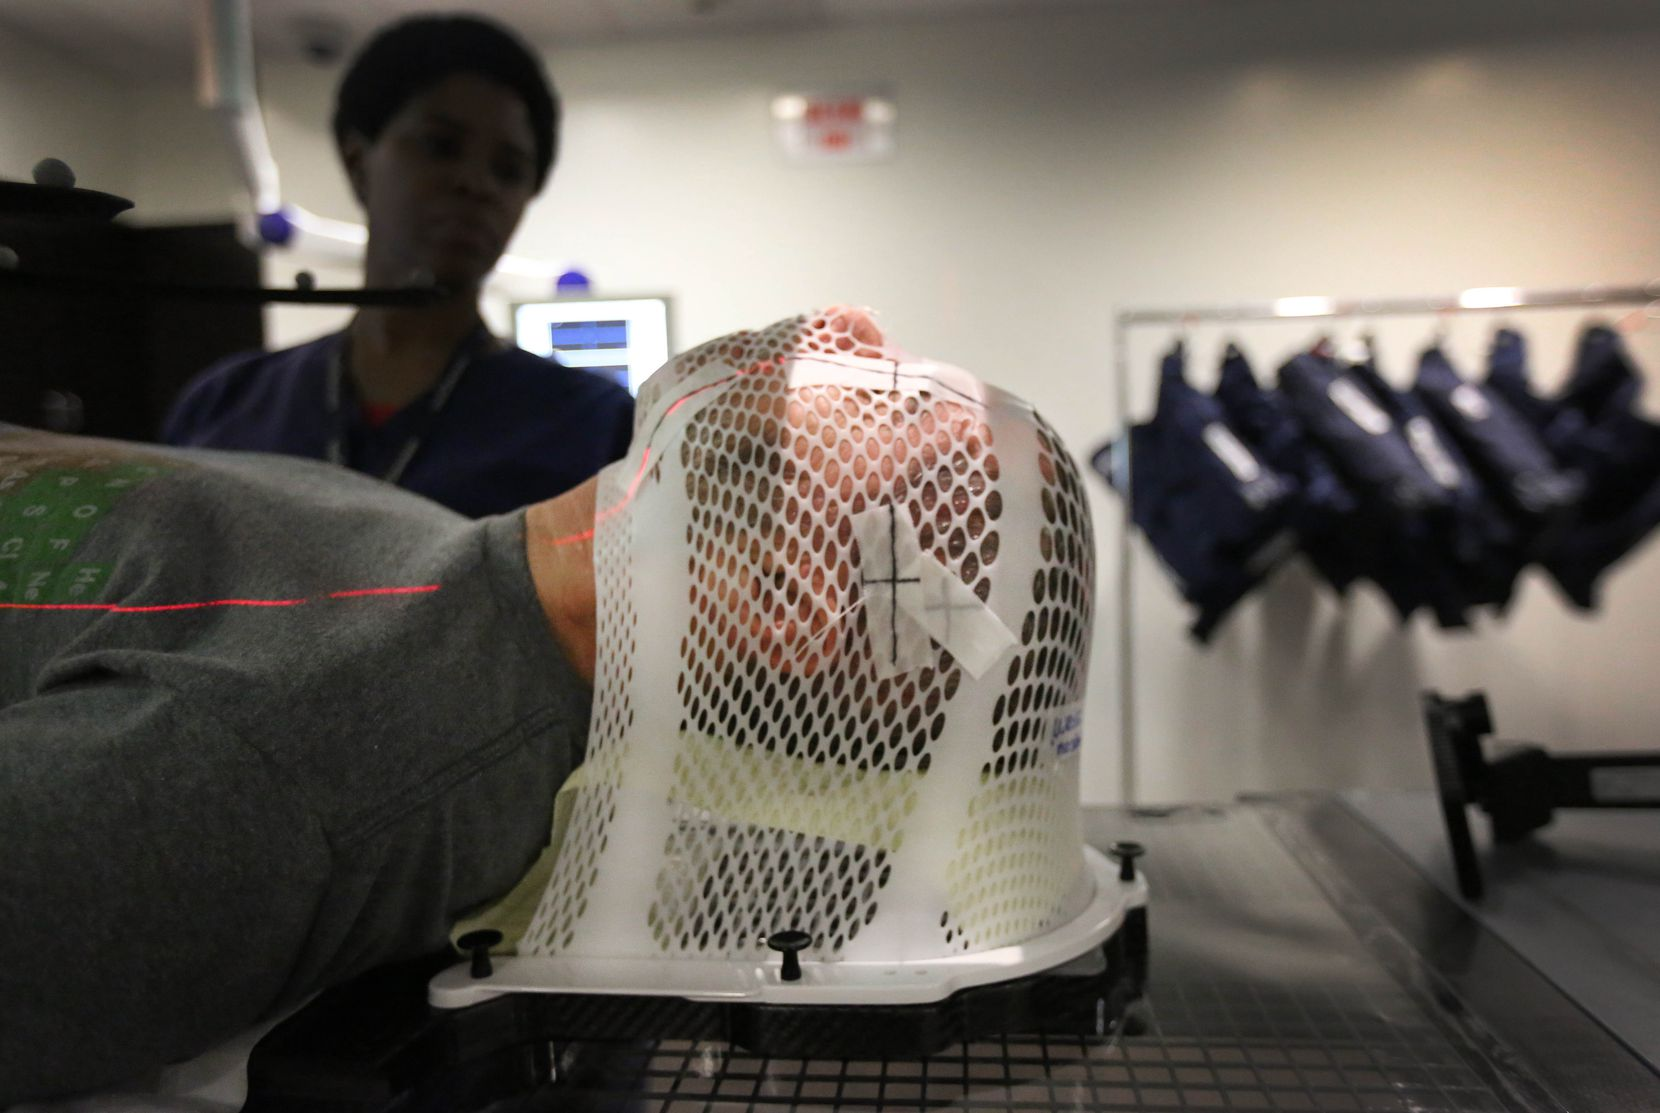 Weiss gets prepped for his radiation treatment at the hospital. (Louis DeLuca/Staff Photographer)